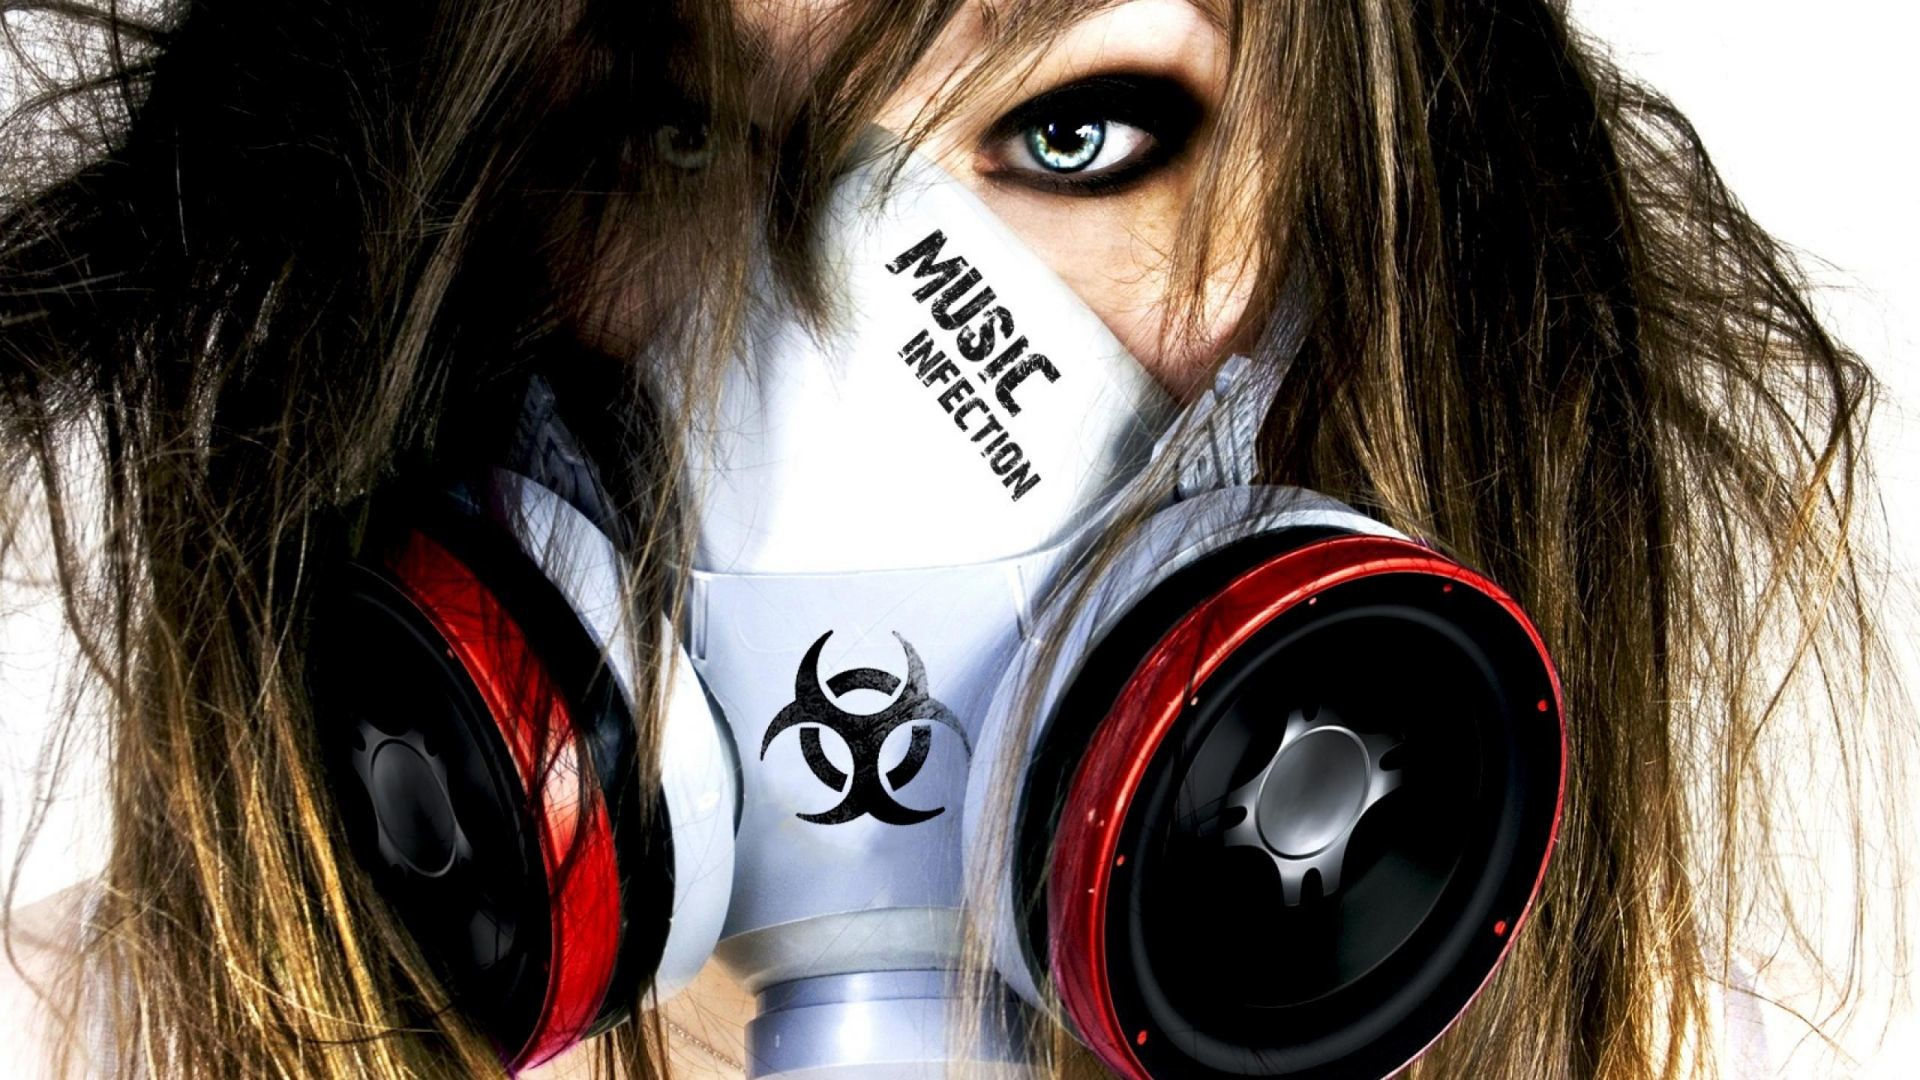 1920x1080 Music Infection Electro And Base Dnb Dance Hd Wallpaper | HD Dance and Music  Wallpaper Free ...